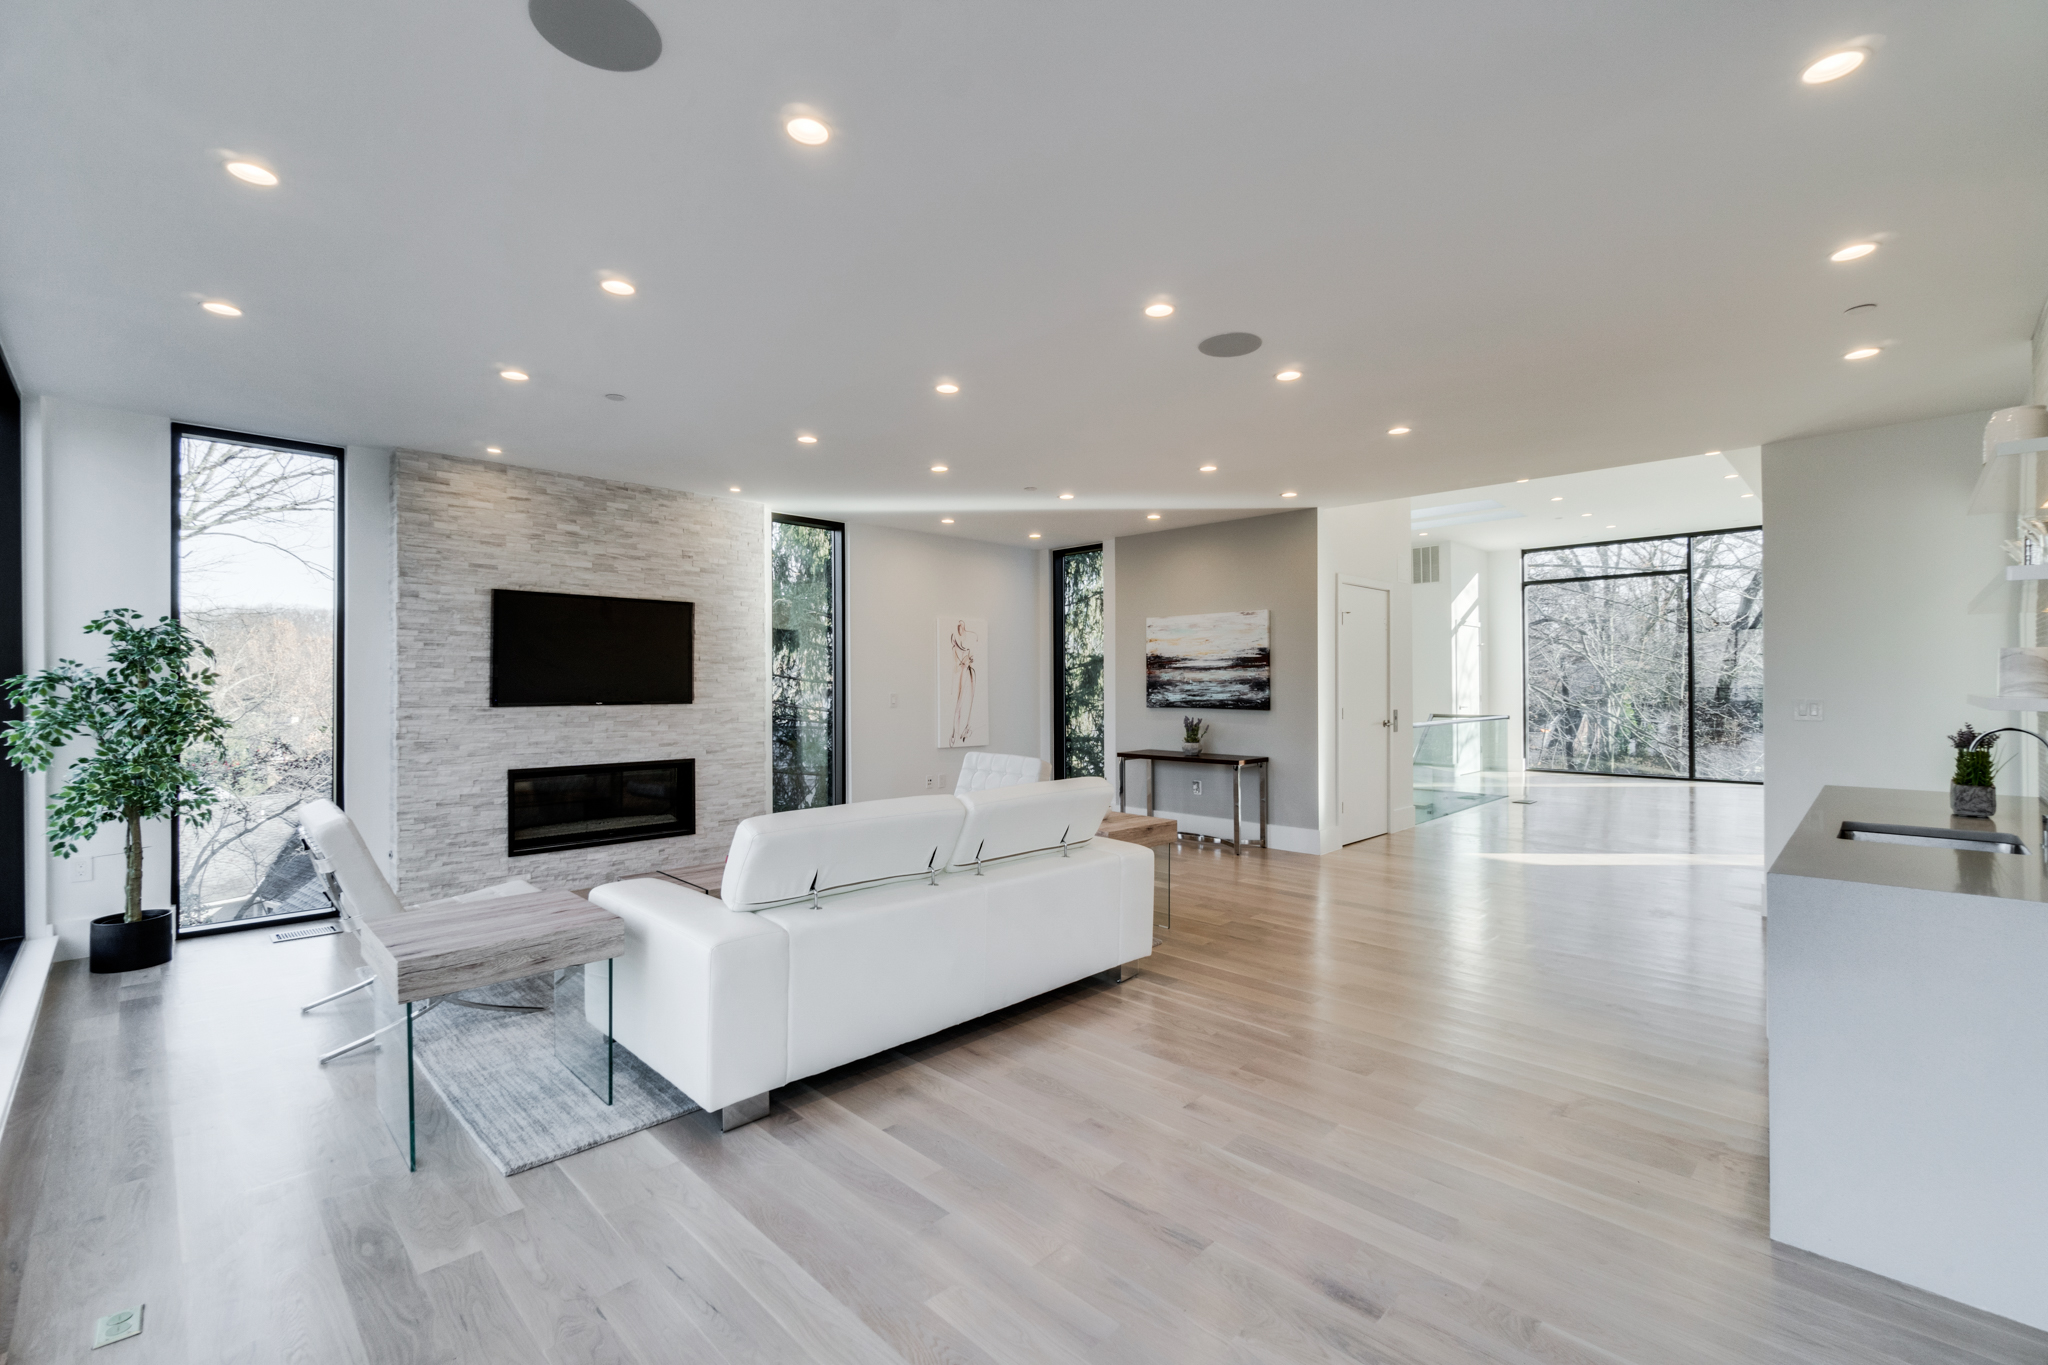 "This modern four-story home in Forest Hills just hit the market and we admit... we have house envy! Built in 2018, the 7,300-square-foot property has six bedrooms, five full bathrooms, one half bath, two fireplaces, a finished basement (with a rec room, sauna and wine cellar), a heated outdoor pool and a two-car garage. The floor-to-ceiling windows throughout the home give off a ""treehouse-like"" vibe and offer unobstructed views of Rock Creek Park, plus lots of natural light. The current asking price is $3,875,000. For more information, you can see the full listing here (http://bit.ly/2DPbbbD) or contact listing agents Patrick Chauvin/Brad  House of Compass Real Estate. (Image: Courtesy Compass Real Estate)"